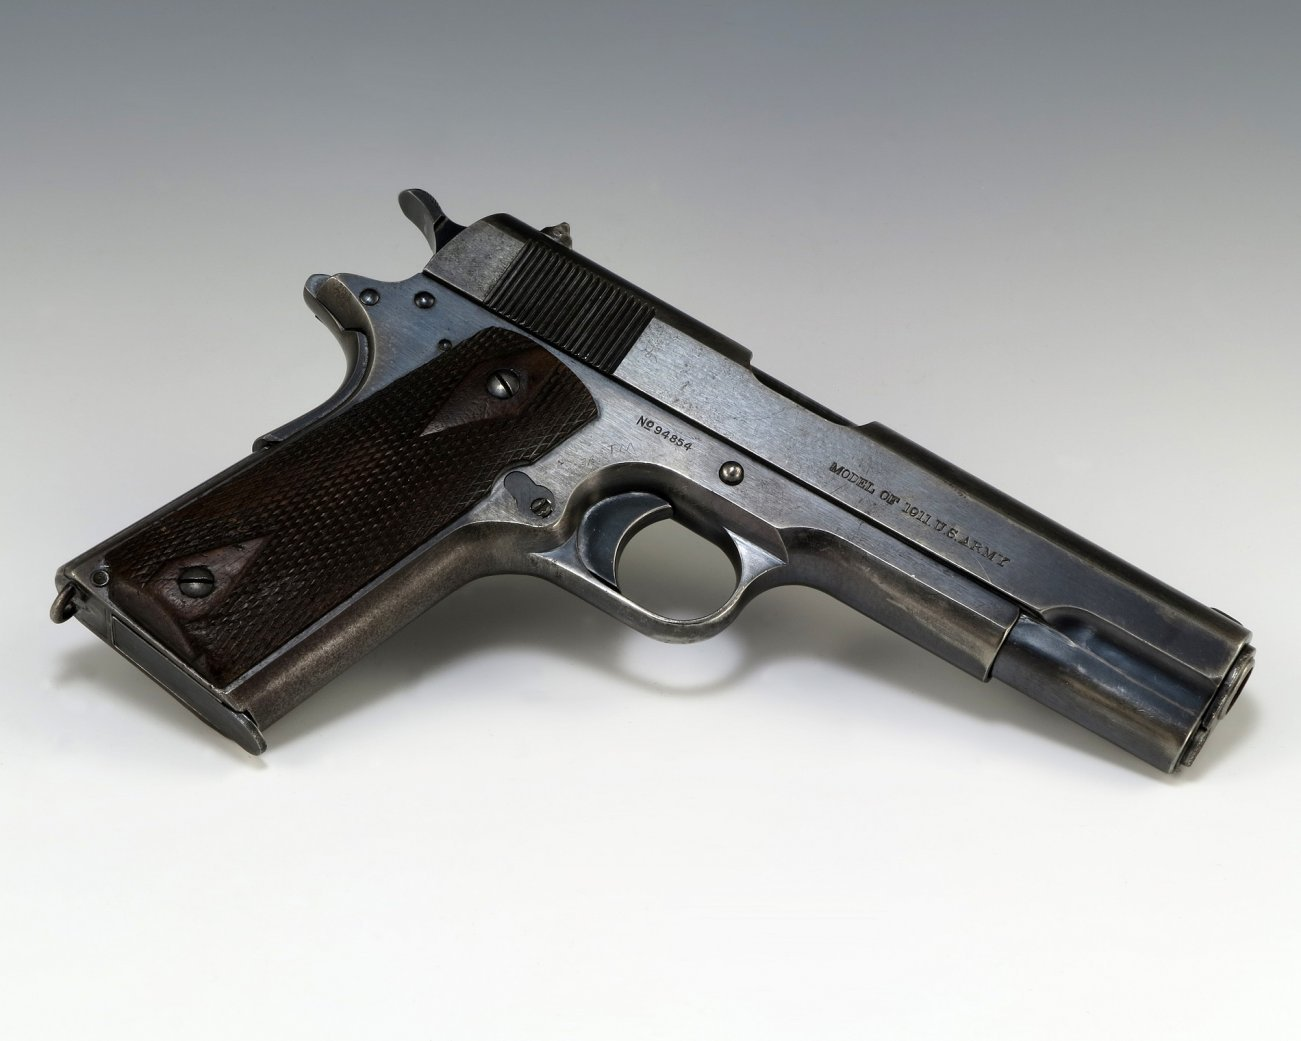 1911 Semiautomatic Pistol: Why America's Enemies Hate This 100-Year-Old Gun